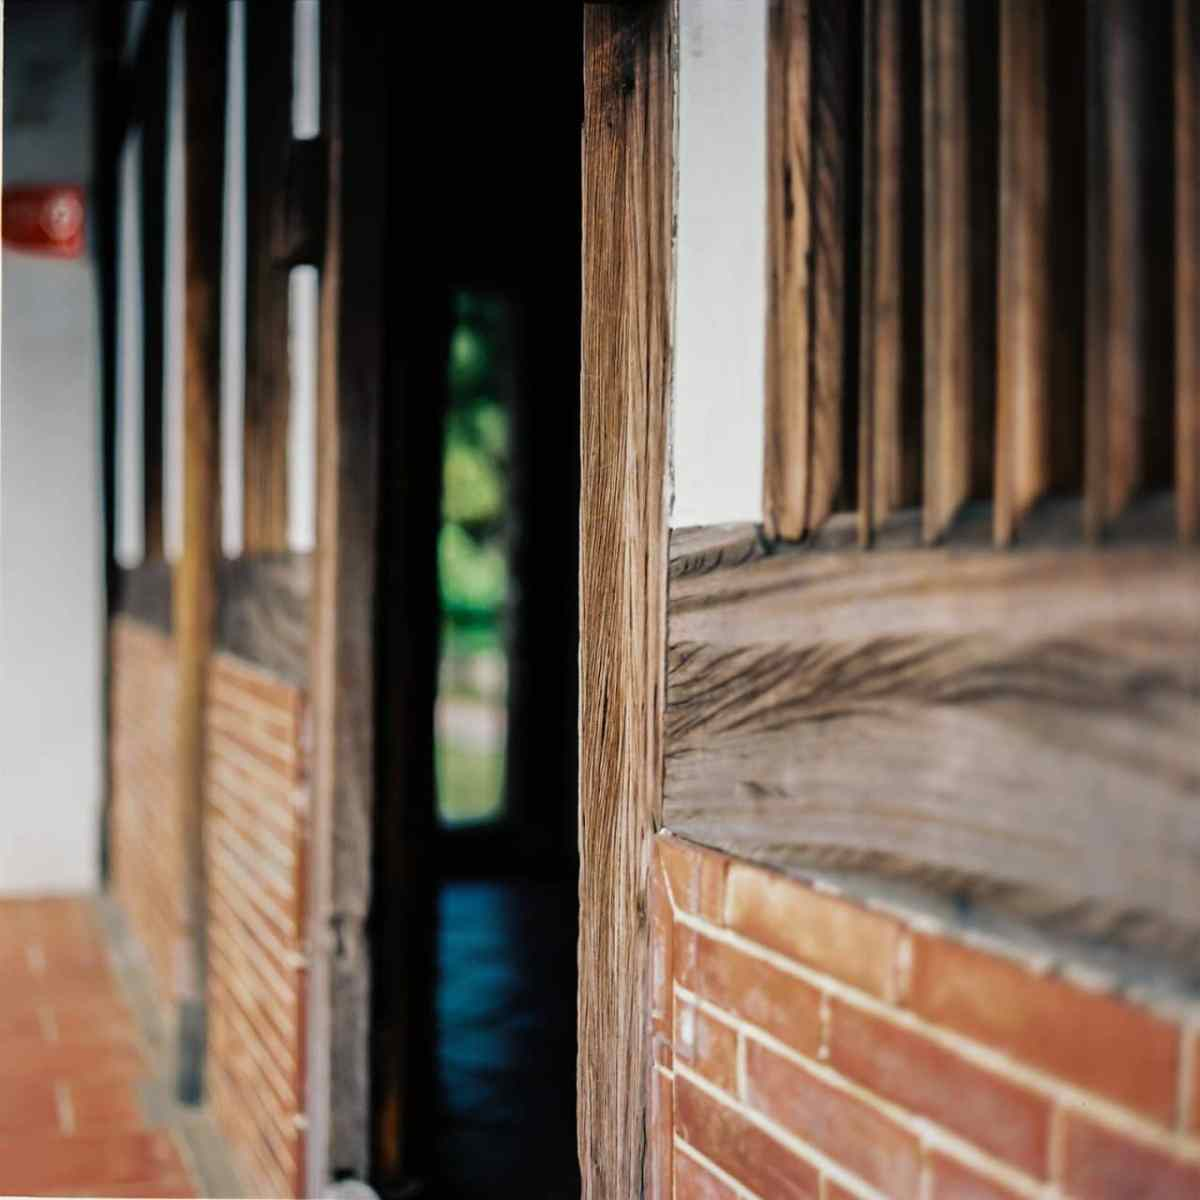 Slits - Shot on Kodak Ektar 100 (120)